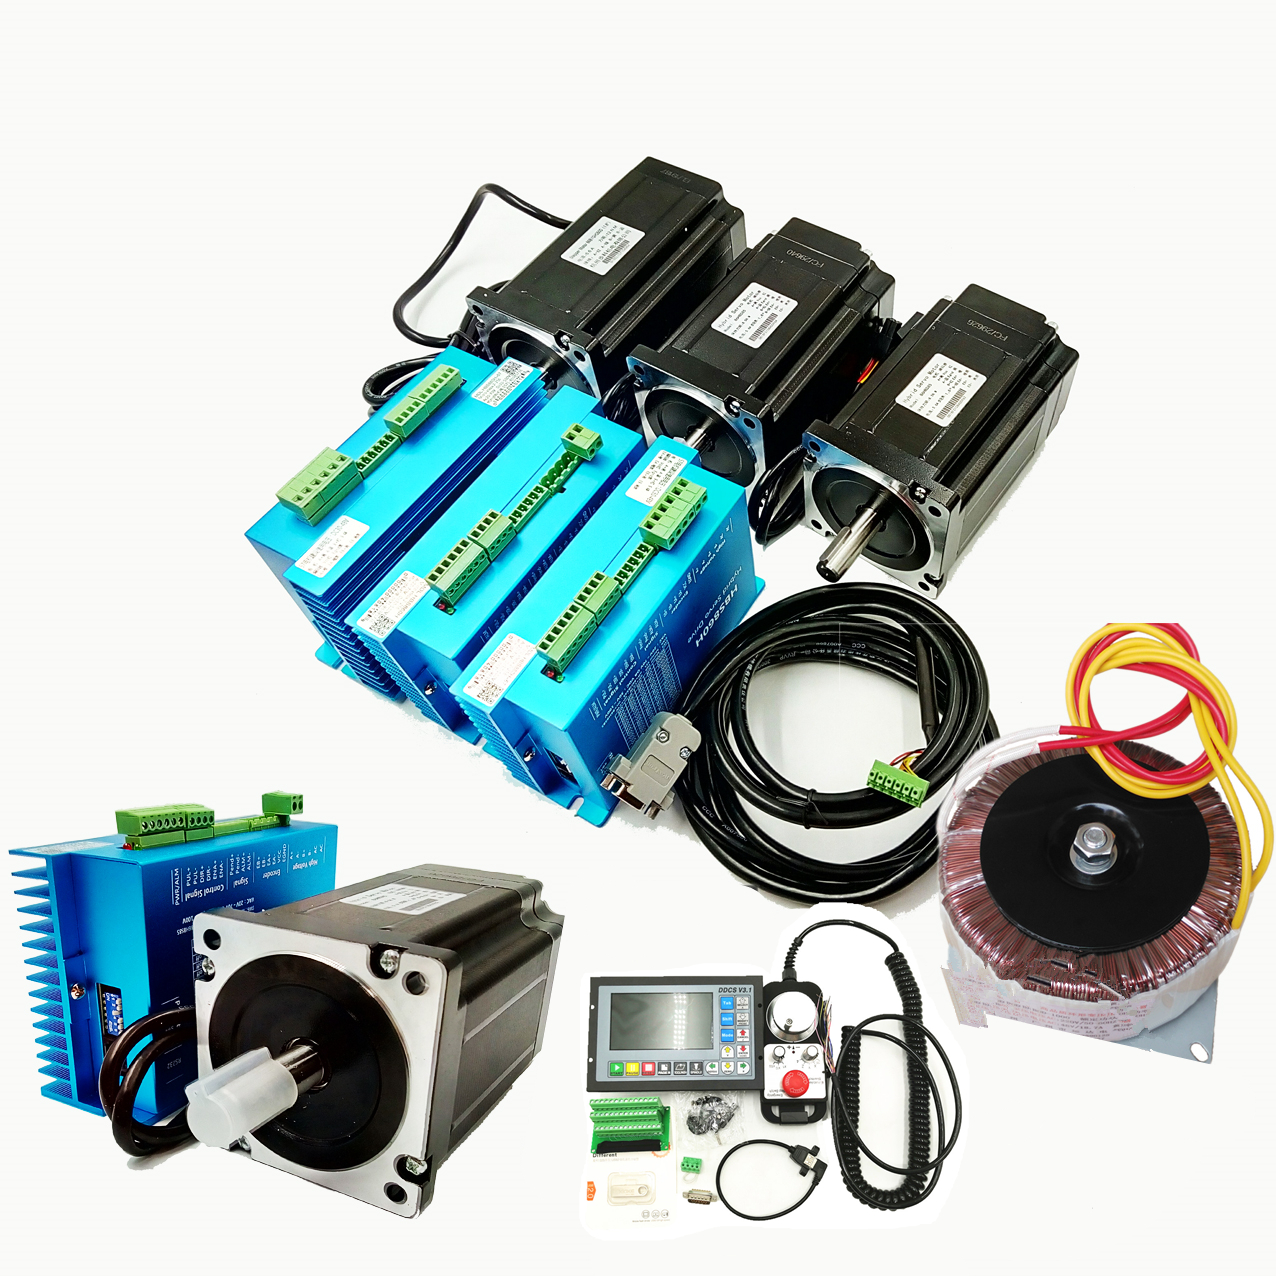 4 Axis NEMA34 1700oz in 12Nm Closed Loop Stepper Kit Driver+Motor+Controller3.1+Handwheel+Power Supply for CNC Engraving Machine